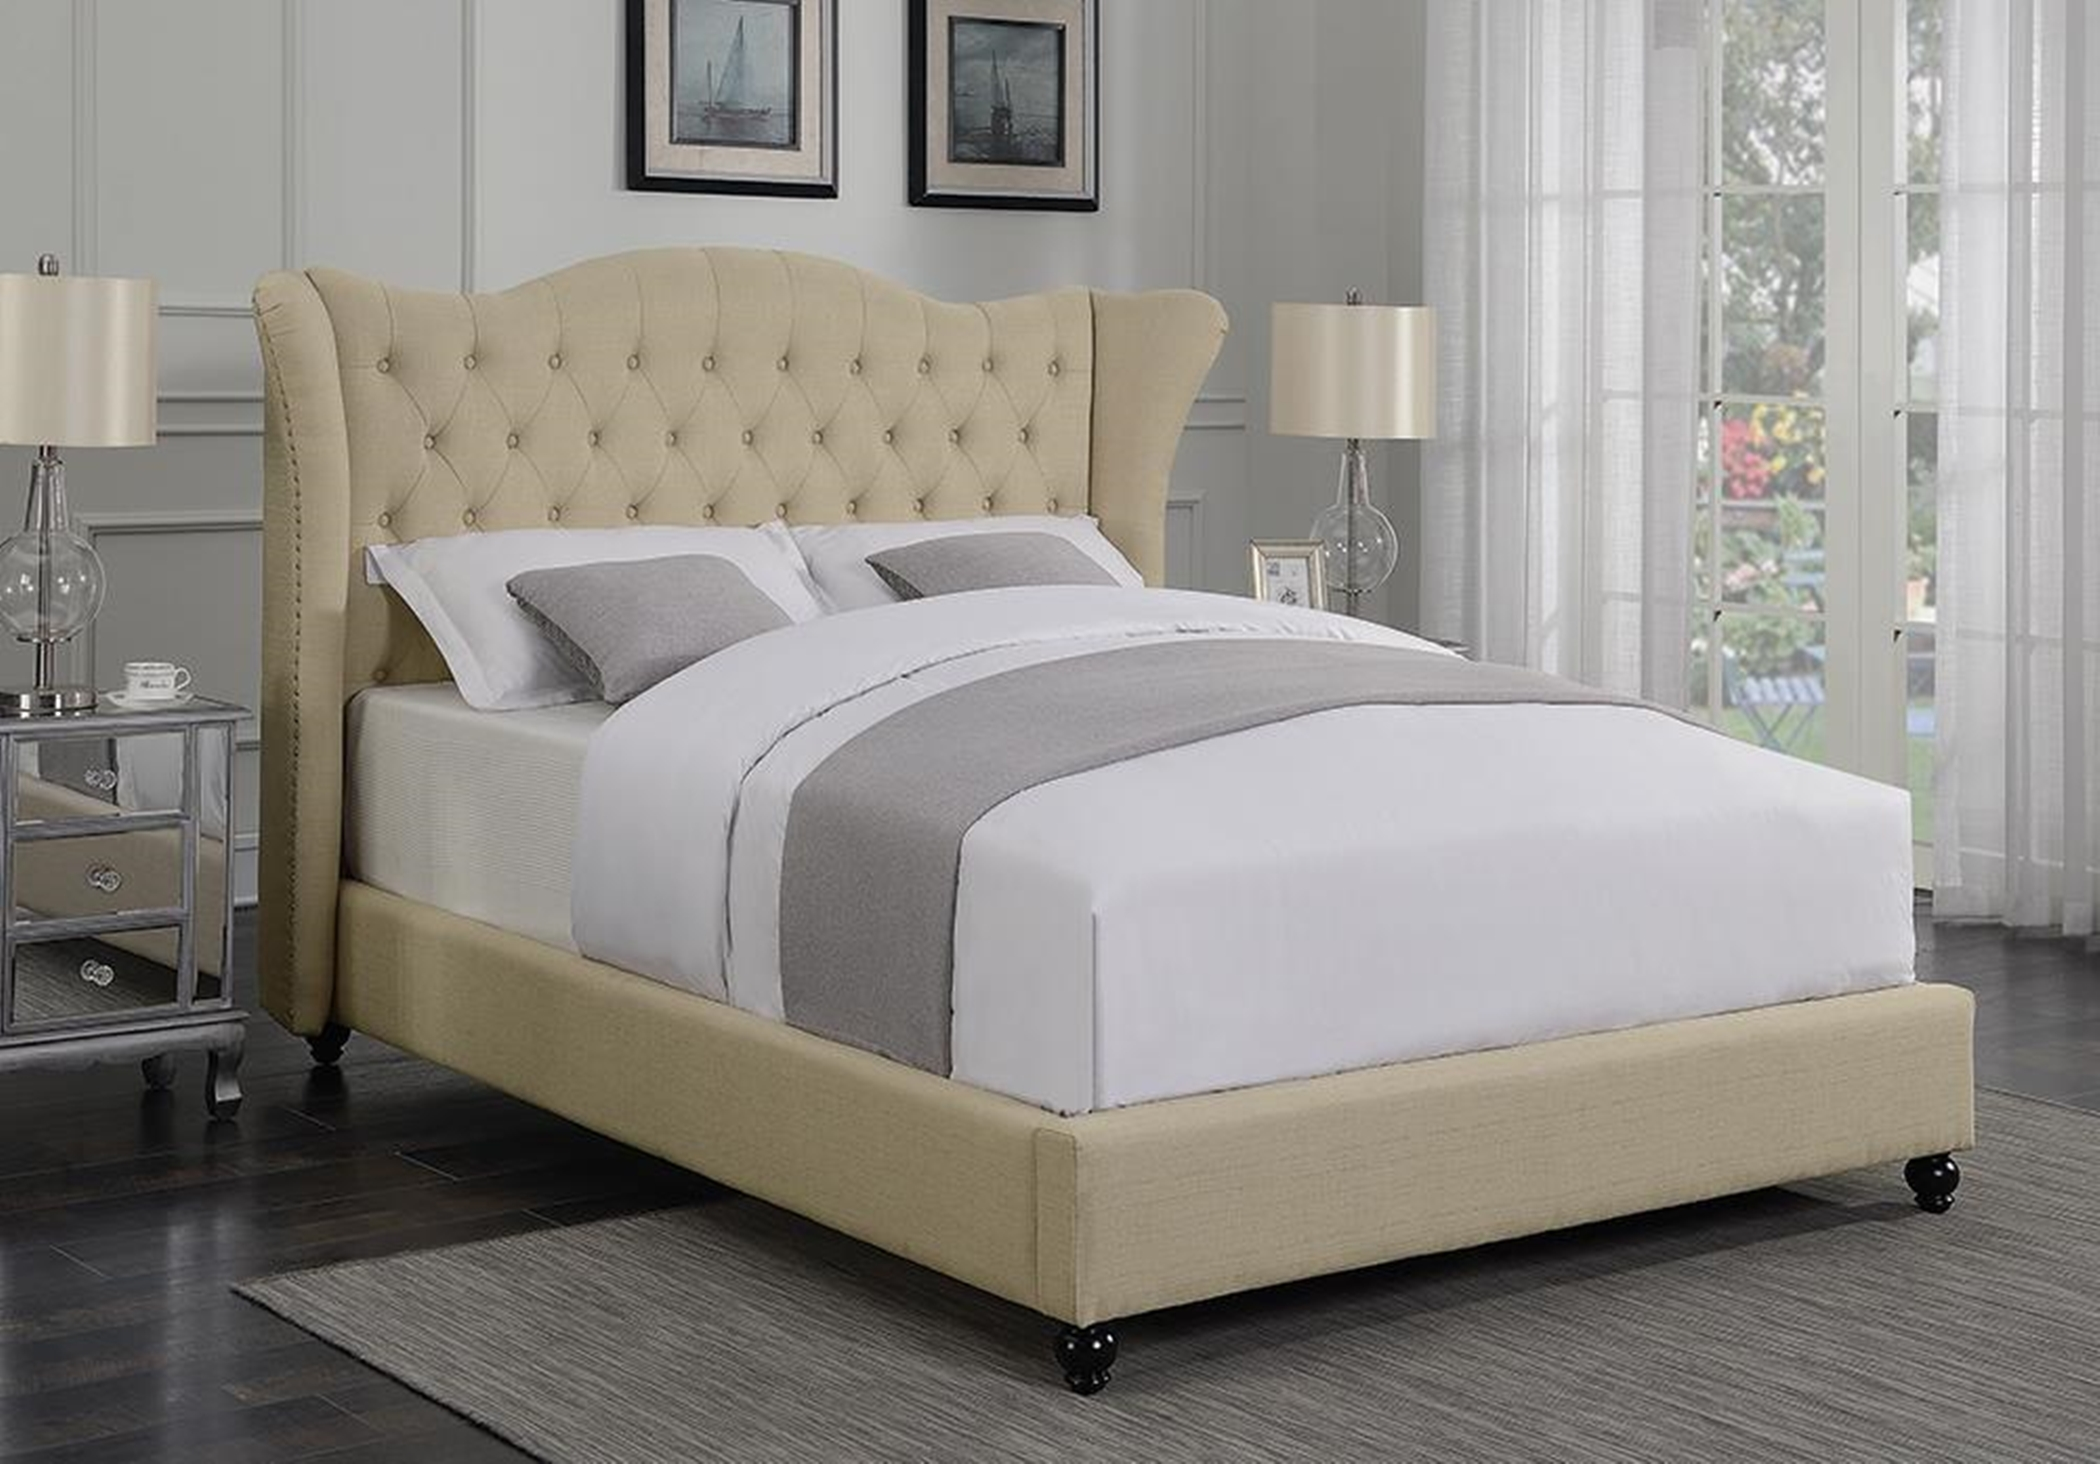 Coronado Beige Upholstered King Bed